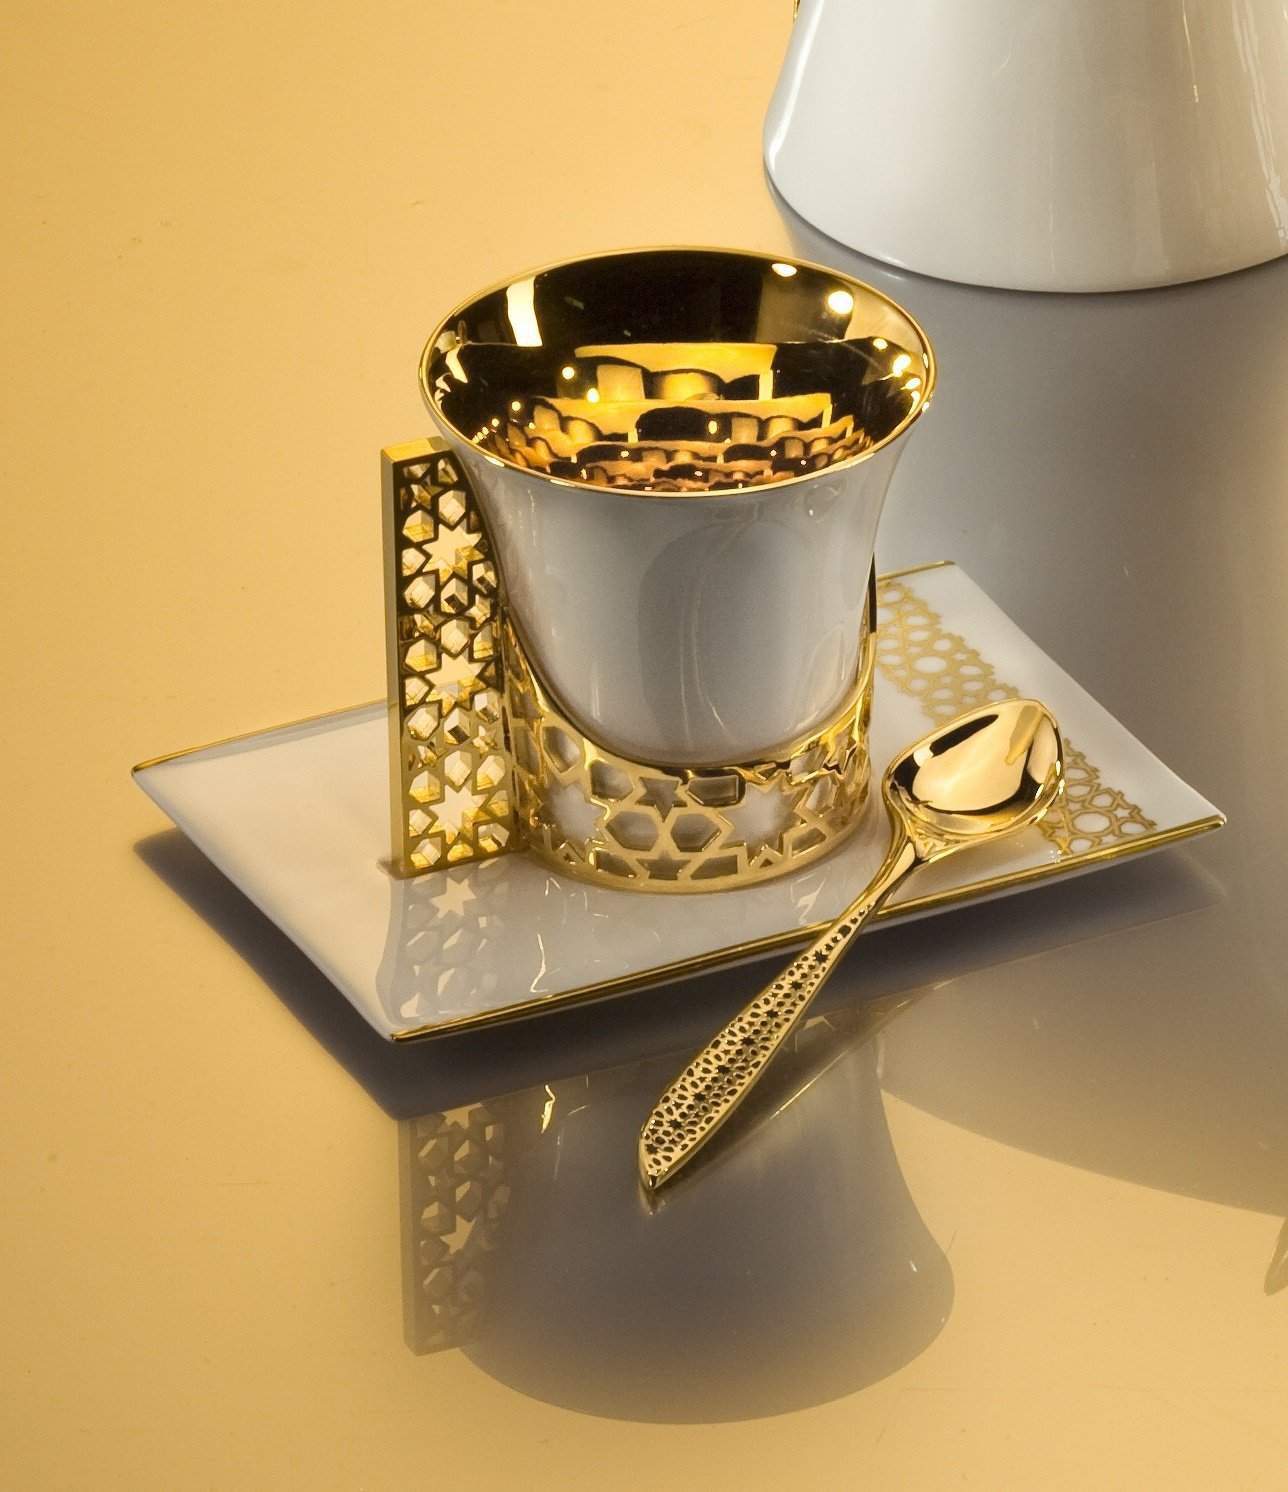 Gold Titanium Plated Coffee Mug